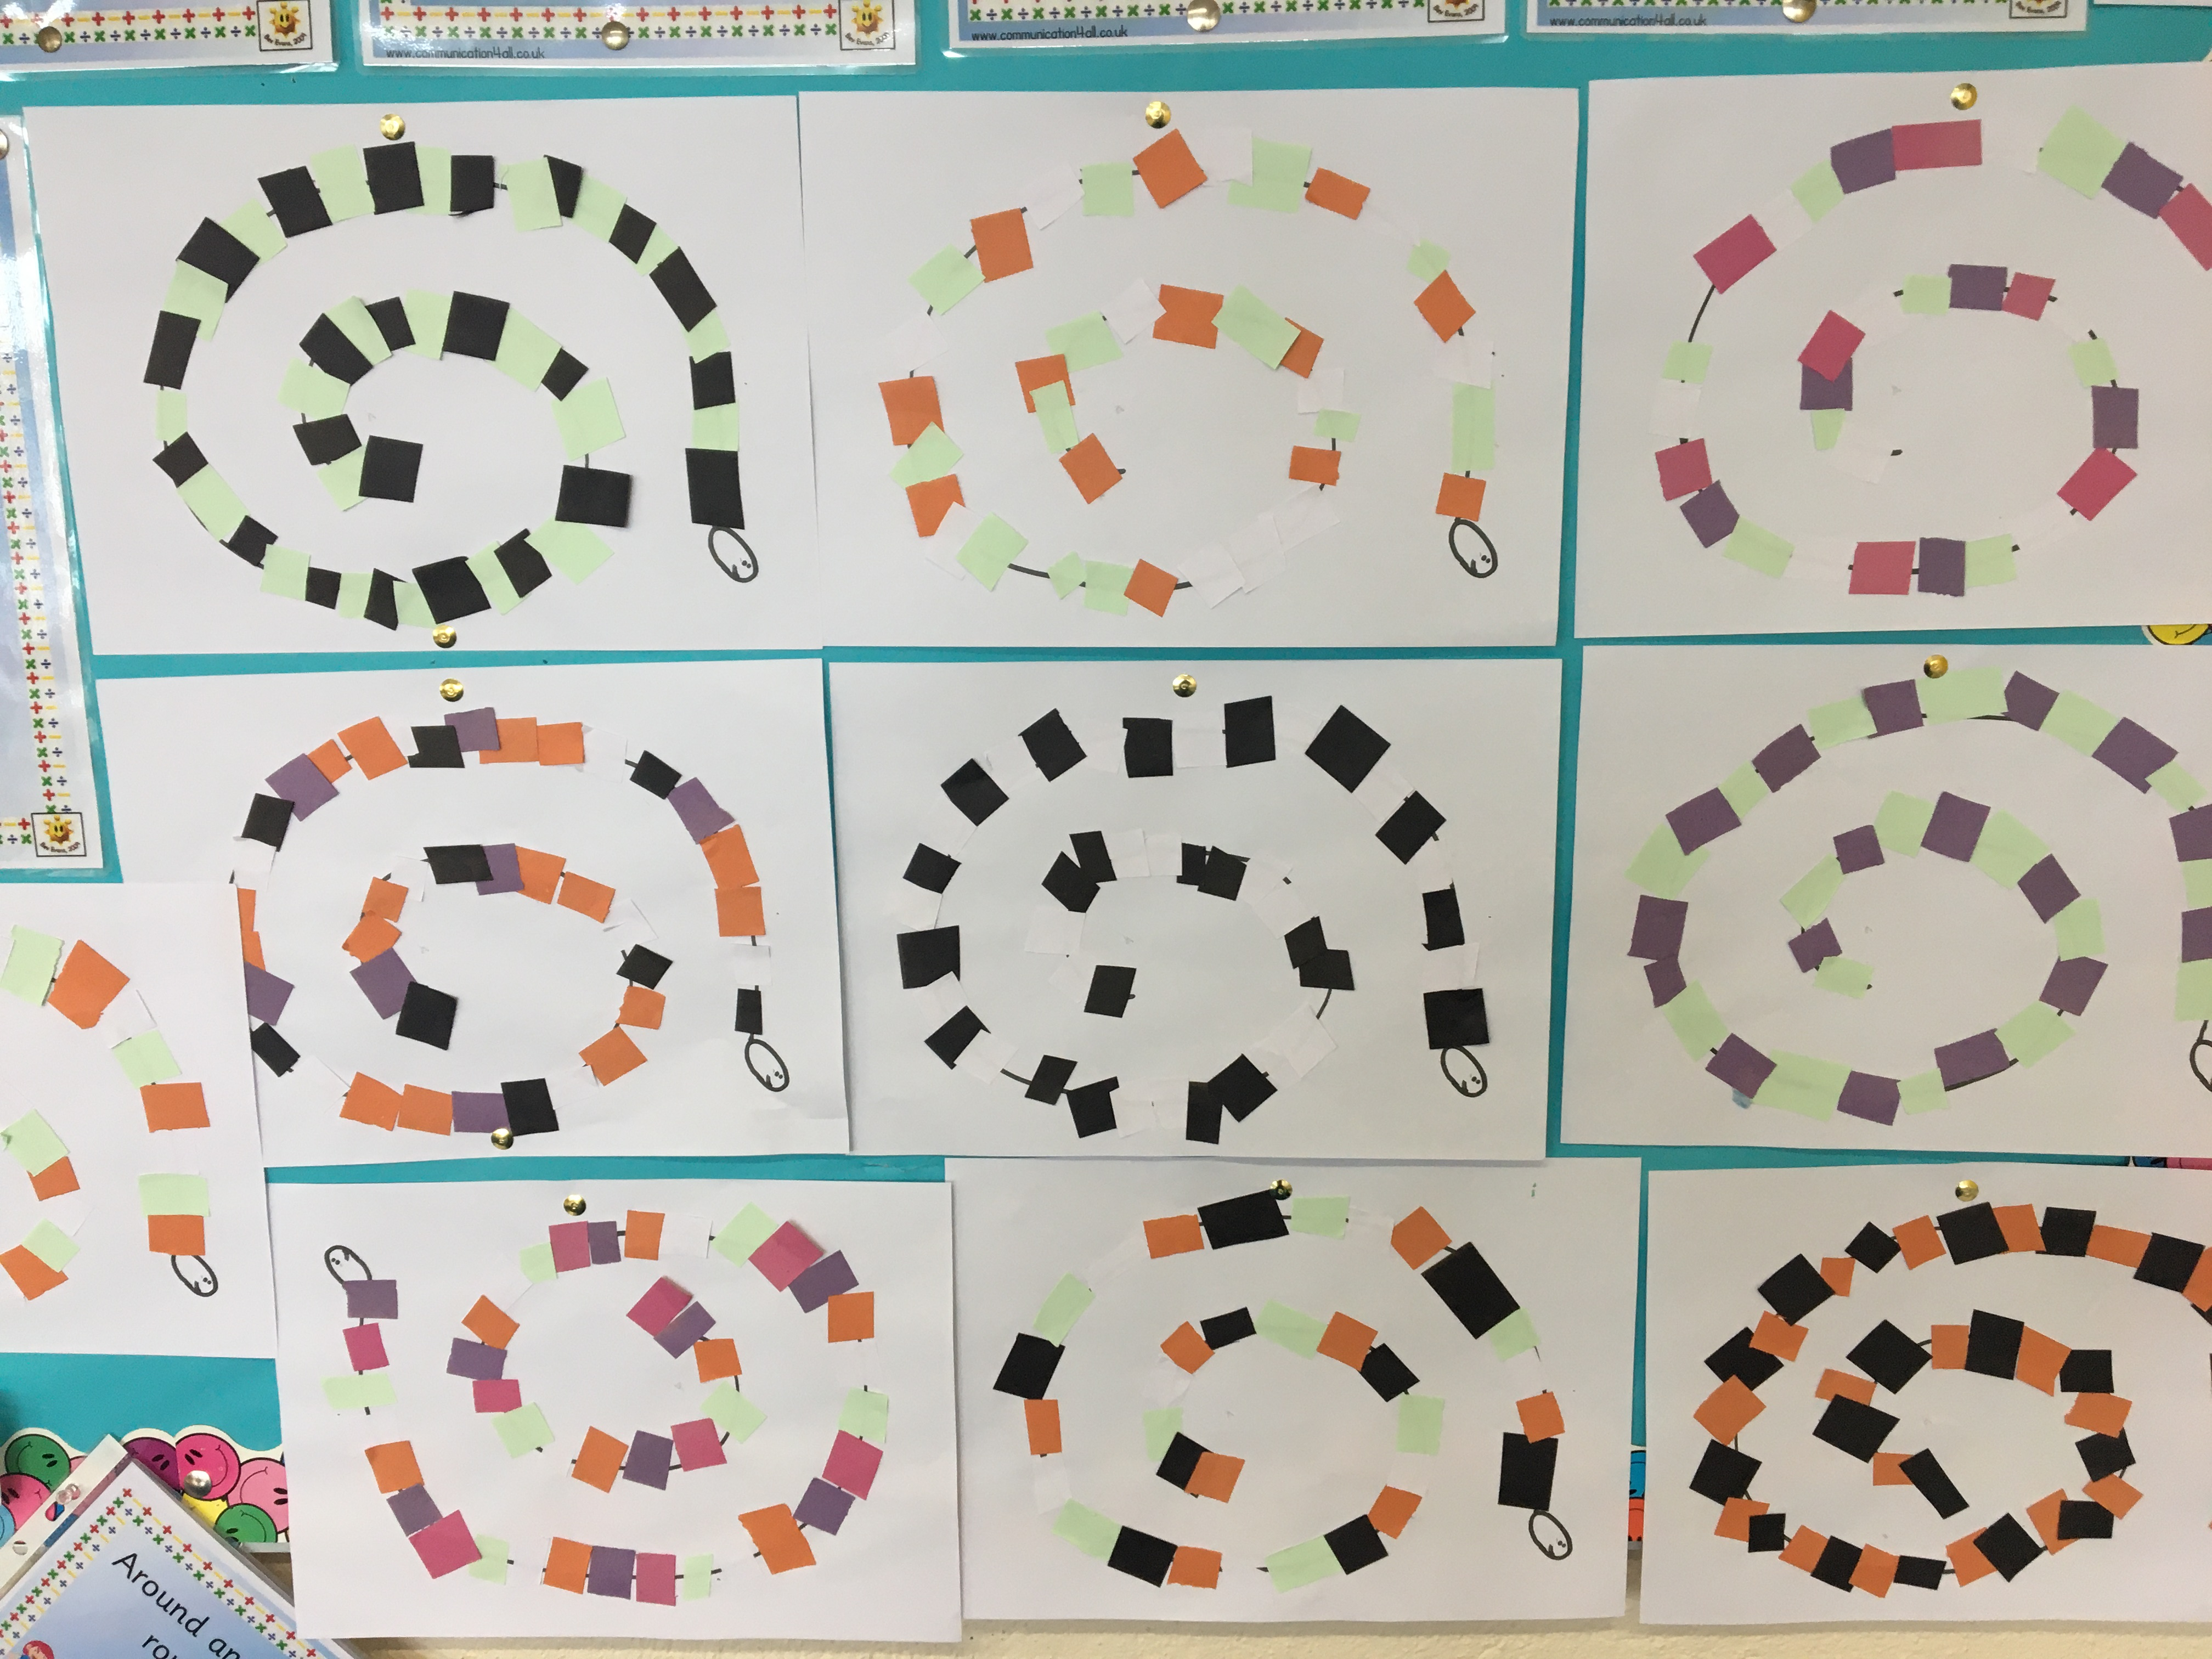 Fun with Patterns!